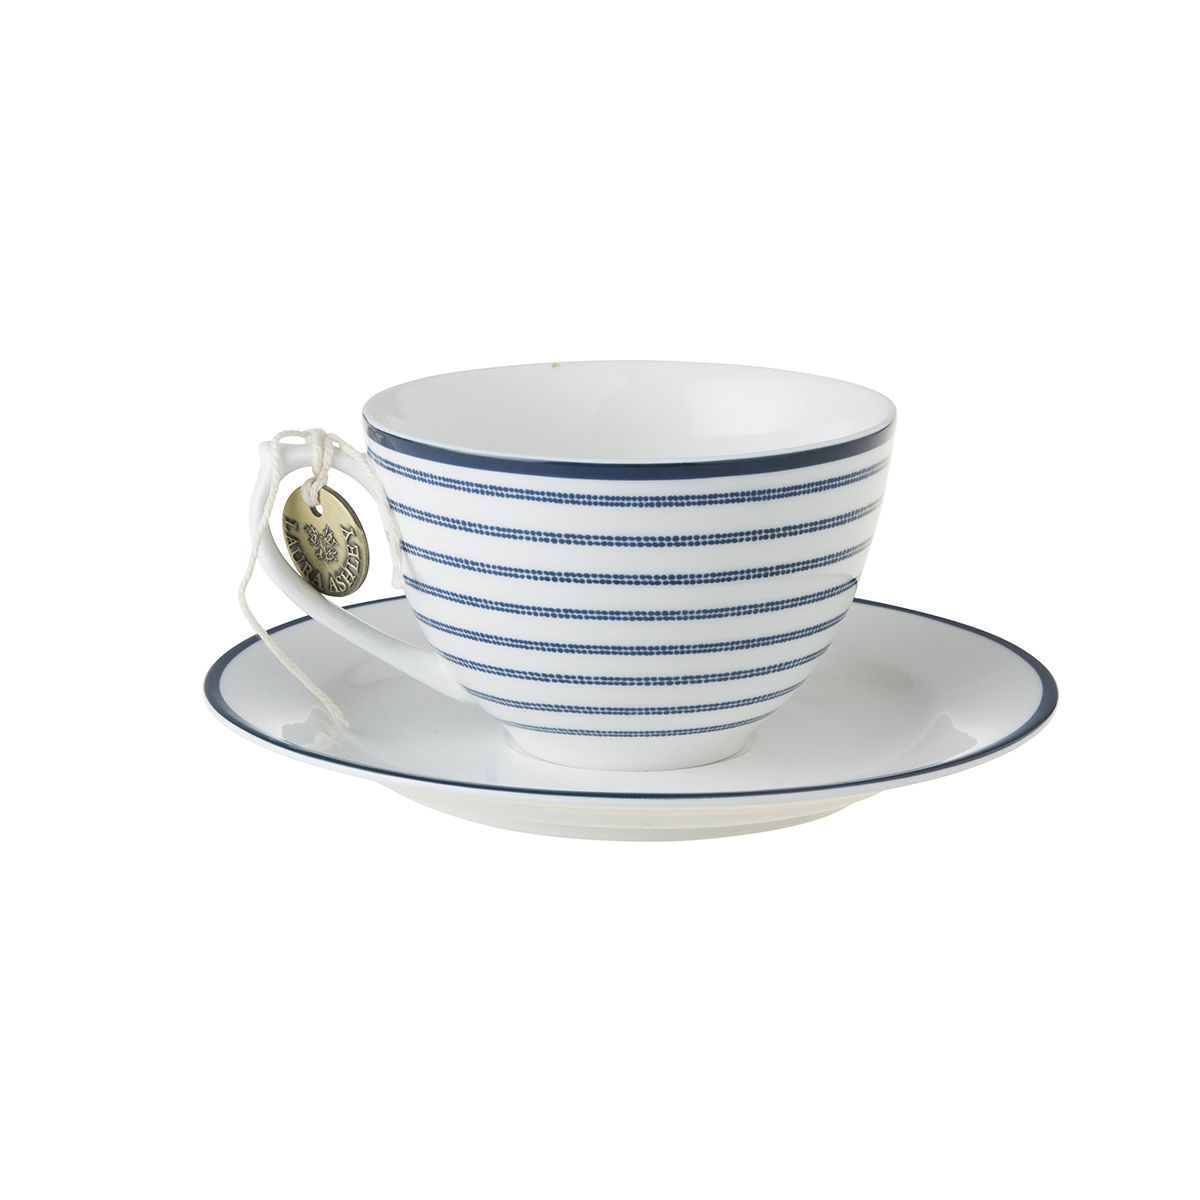 Laura Ashley 8.8oz Cup and Saucer Candy Stripe - product images  of